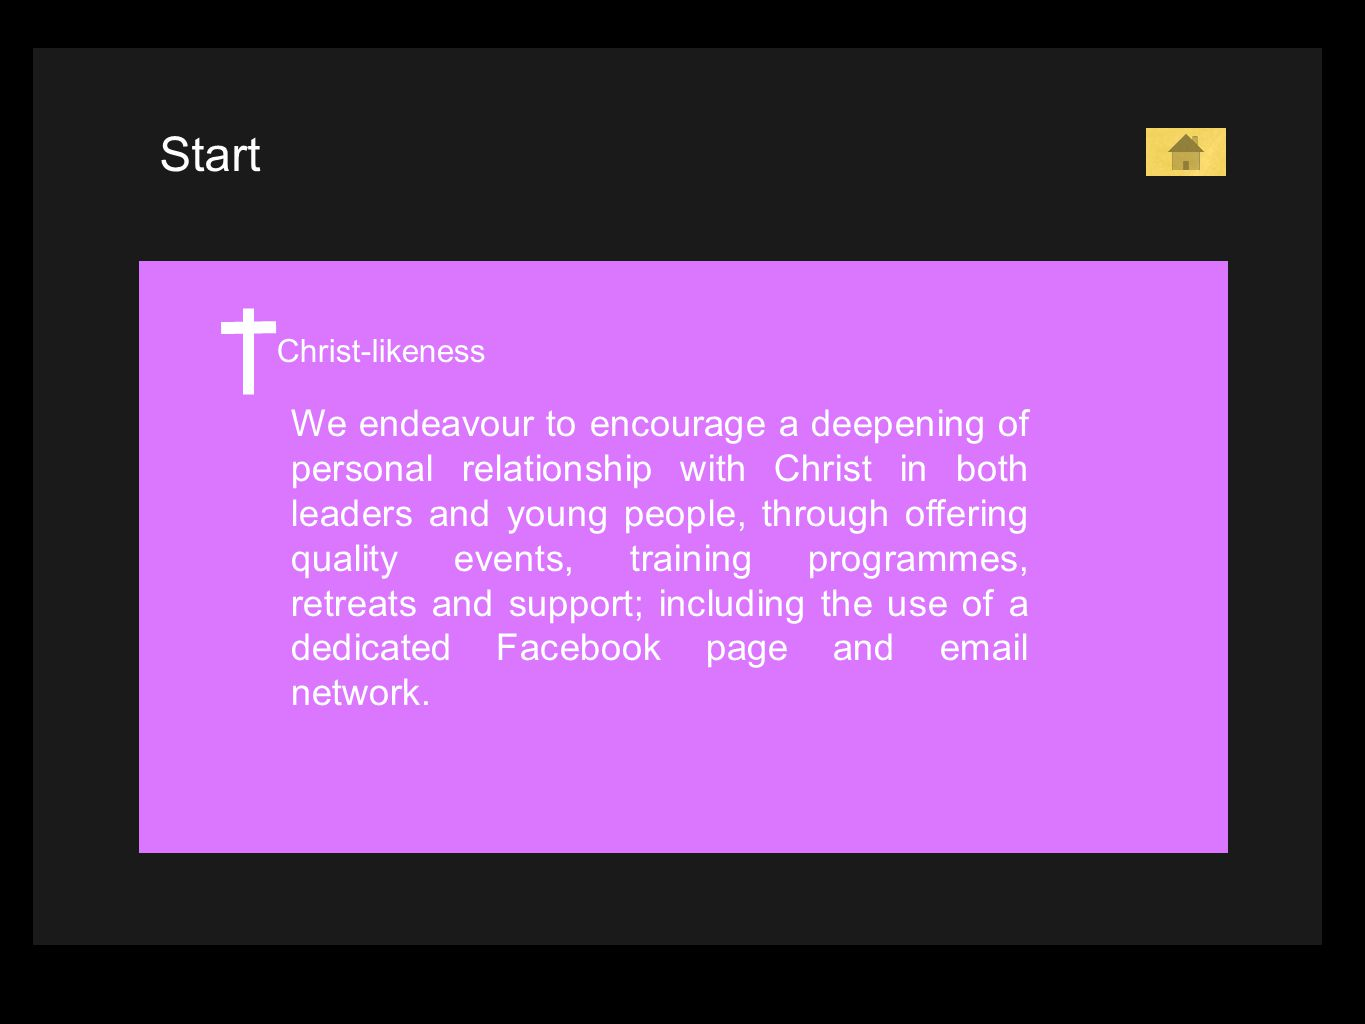 Start Christ-likeness We endeavour to encourage a deepening of personal relationship with Christ in both leaders and young people, through offering quality events, training programmes, retreats and support; including the use of a dedicated Facebook page and email network.